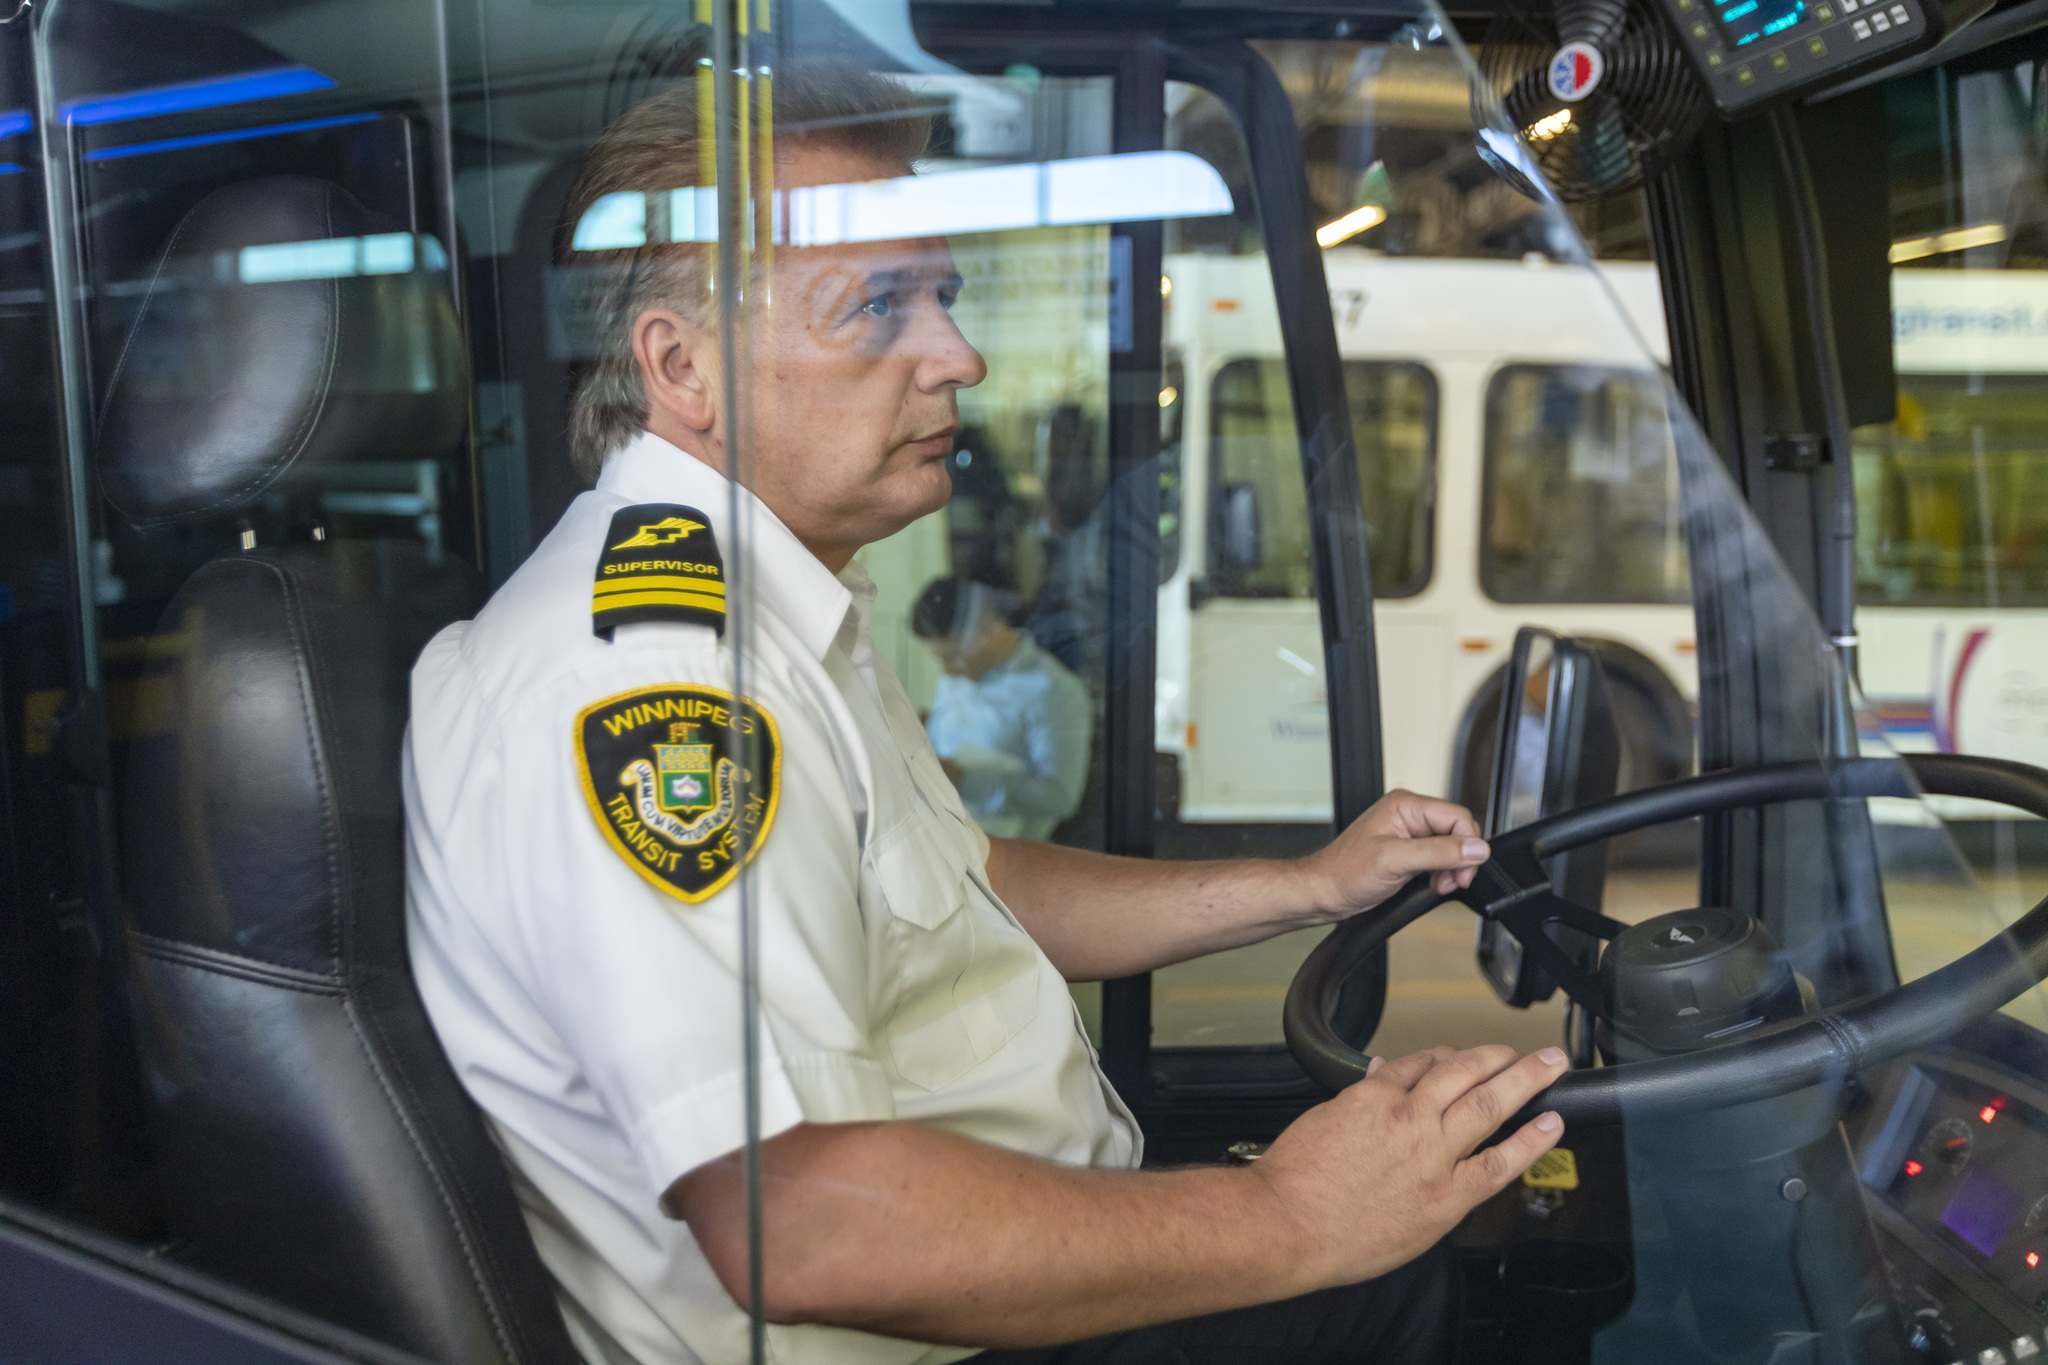 Blaine Early, Winnipeg Transit's chief timekeeper, checks out the new safety shield, which will be installed at a rate of 15 per week for 42 weeks. (Sasha Sefter / Winnipeg Free Press)</p>